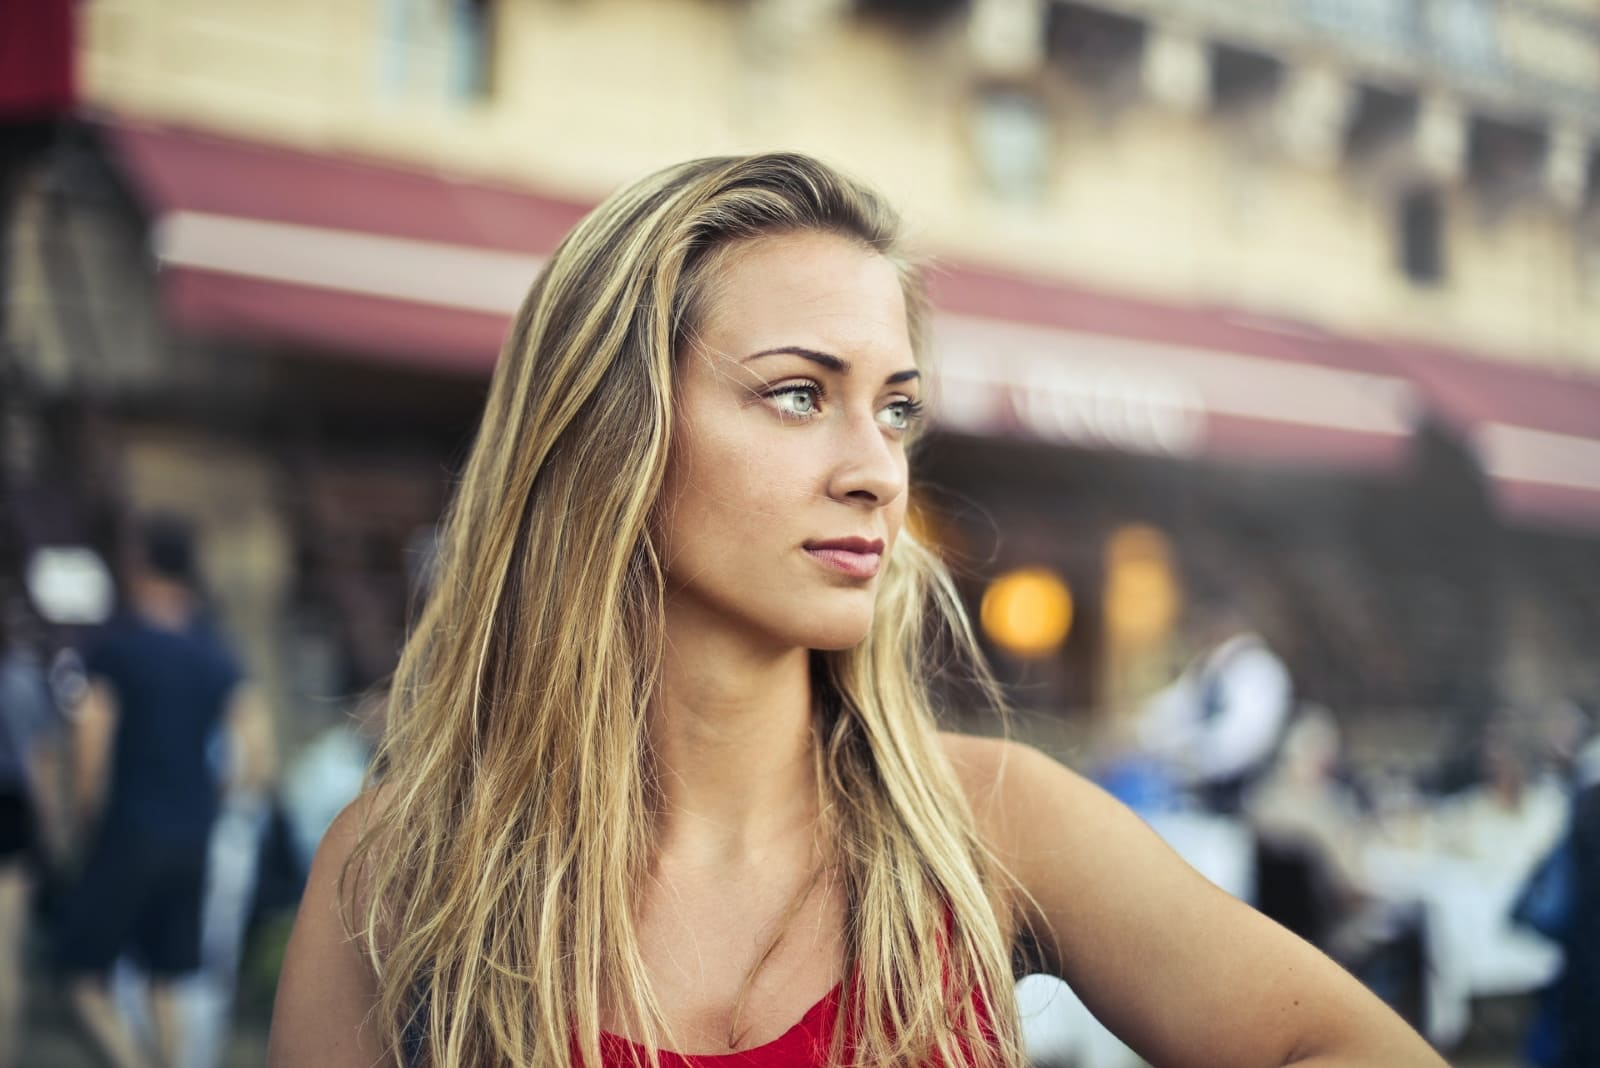 blonde woman in red top standing on the street